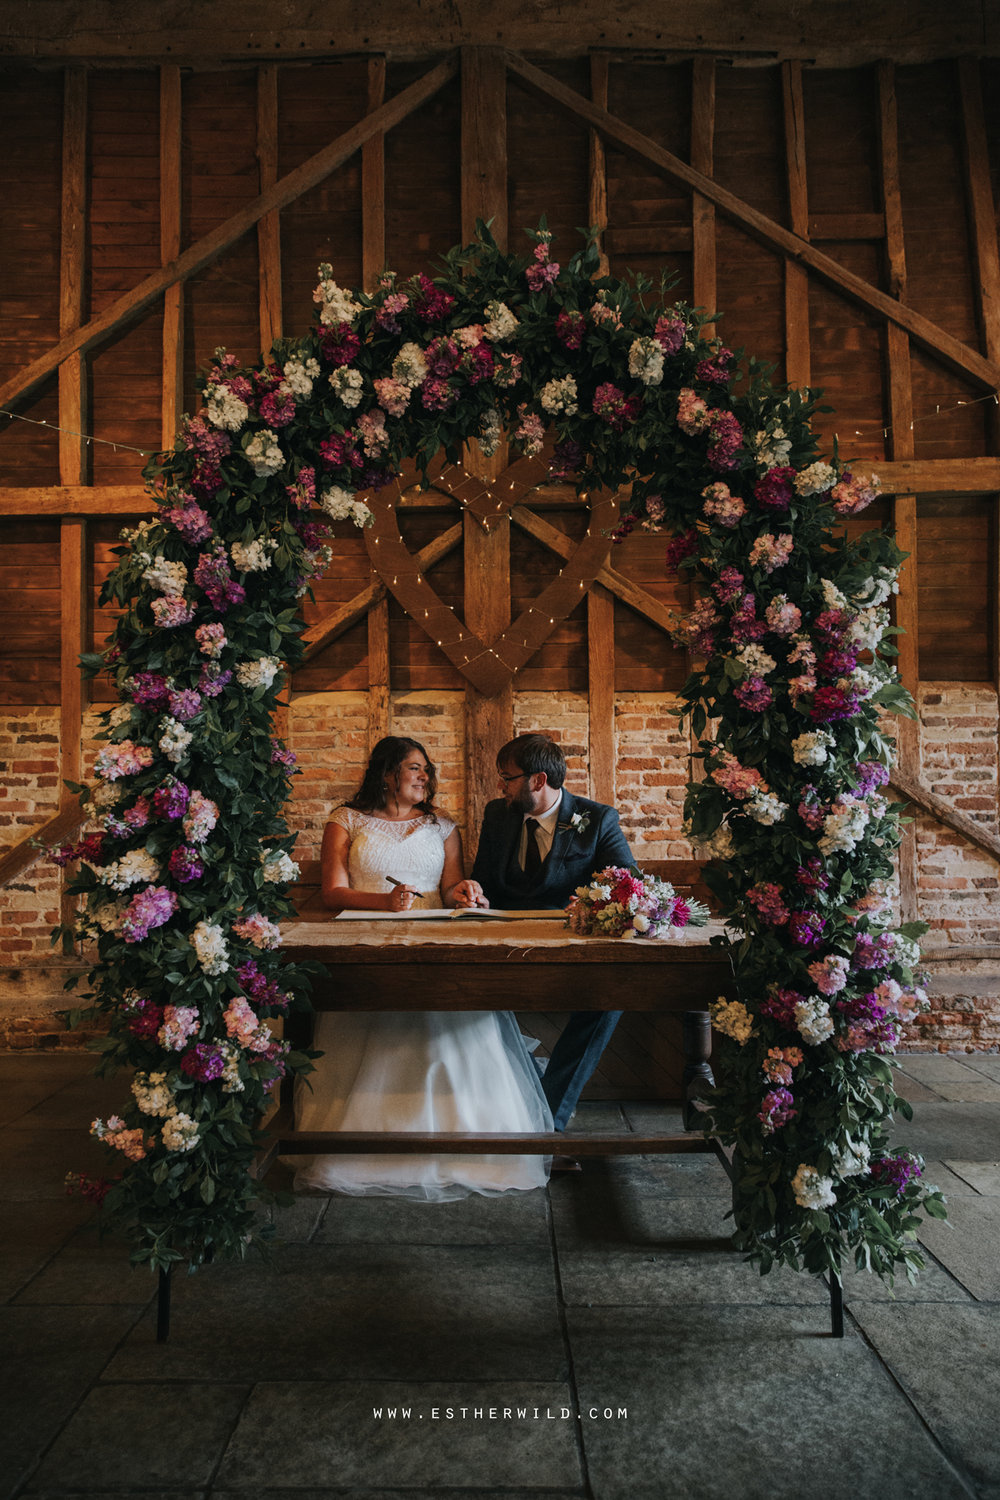 The_Red_Barn_Wedding_Kings_Lynn_Norfolk_IMG_0921.jpg